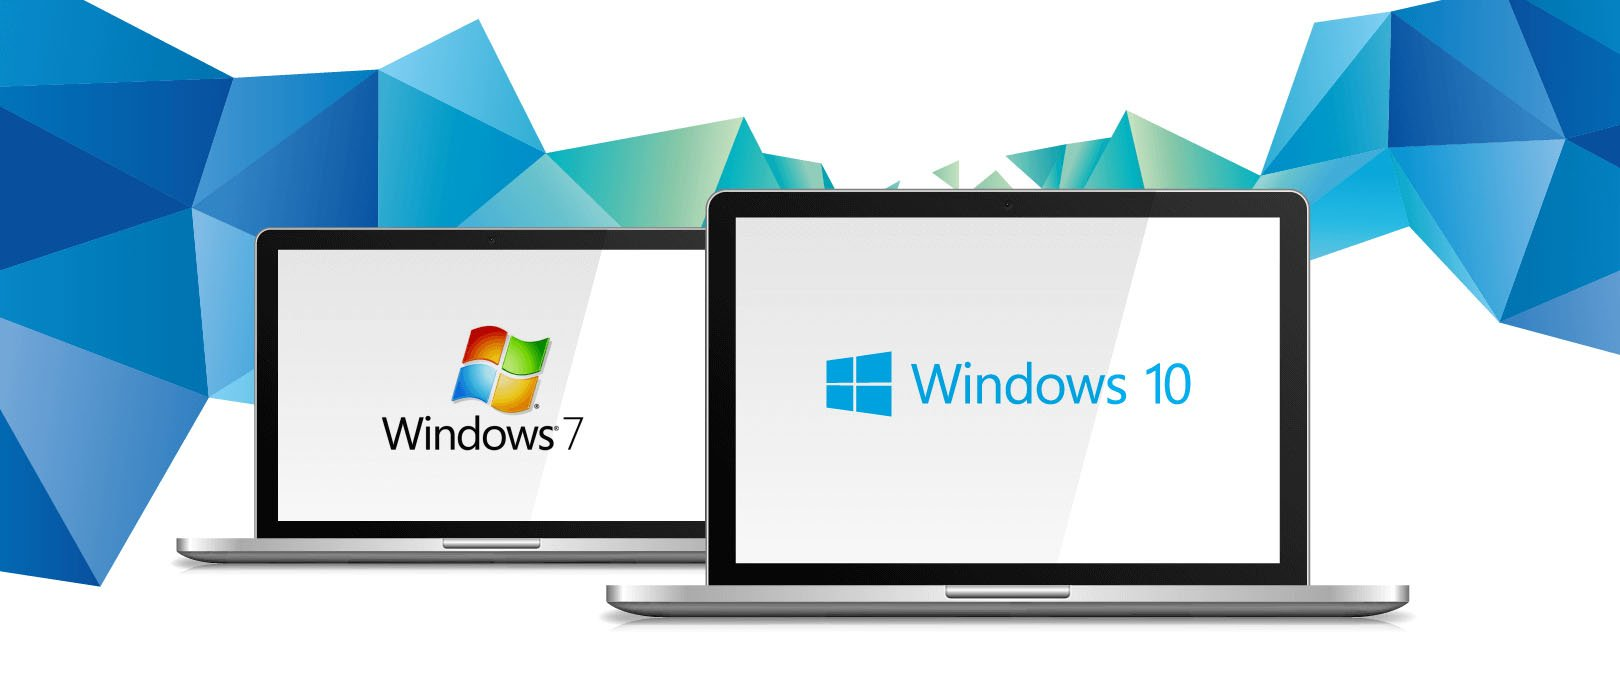 Windows 7 to Windows 10 Upgrade and Transition